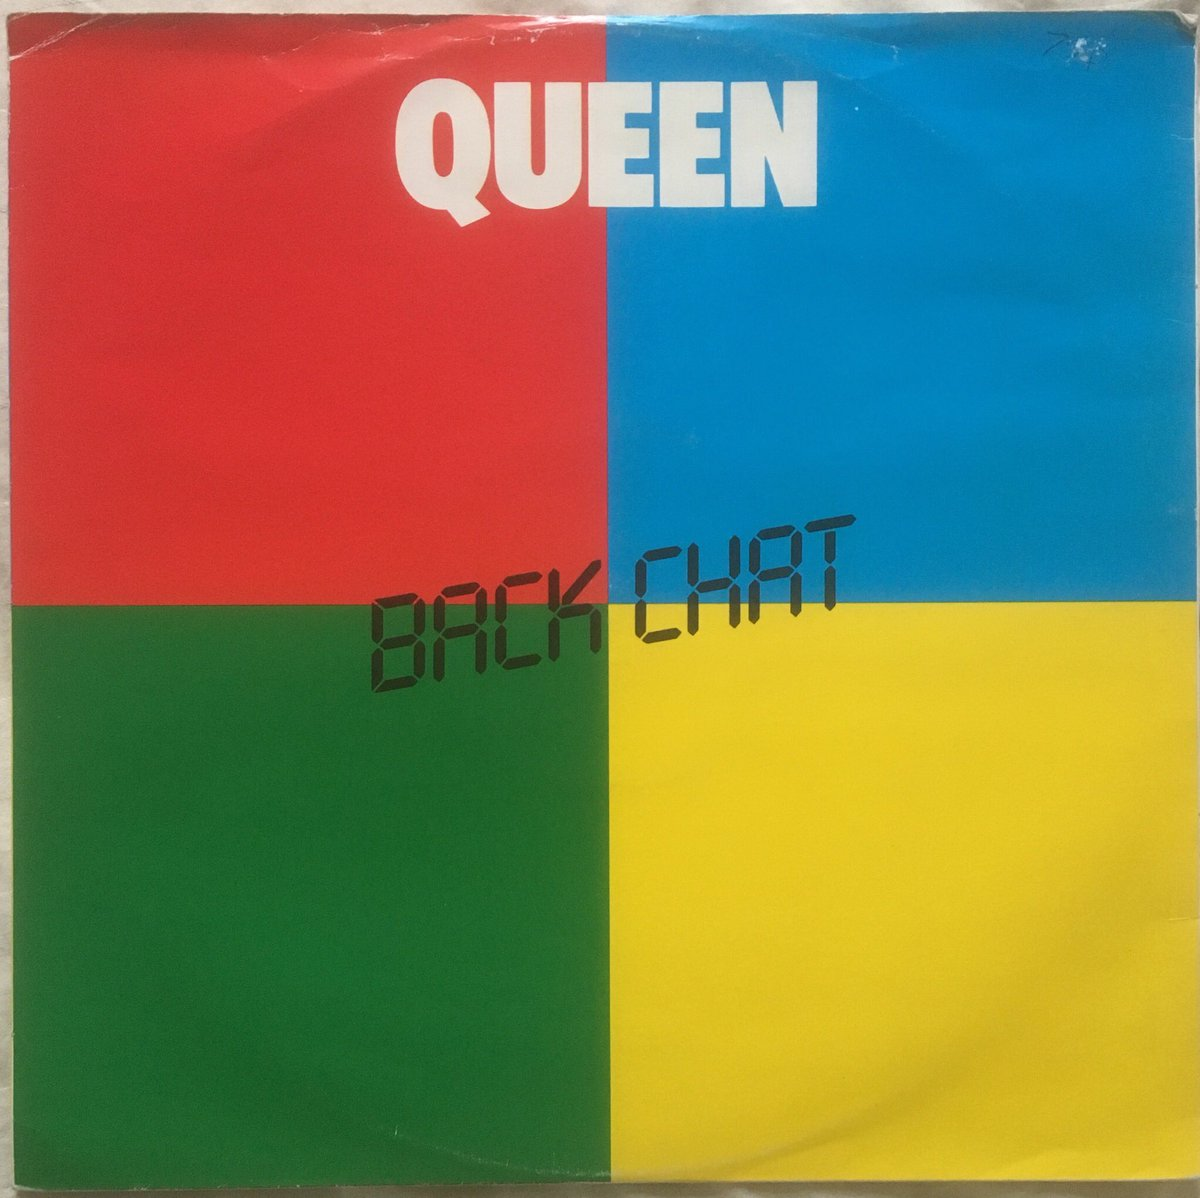 """226/ """"Backchat"""": UK 12"""" extended version. Queen's 1st 12"""" in the U.K released in 1982. A funk vibe from John it only made no 40 in the U.K. but no 3 in France! #Queen #FreddieMercury #BrianMay #JohnDeacon #RogerTaylor<br>http://pic.twitter.com/GU9tTxWqWA"""